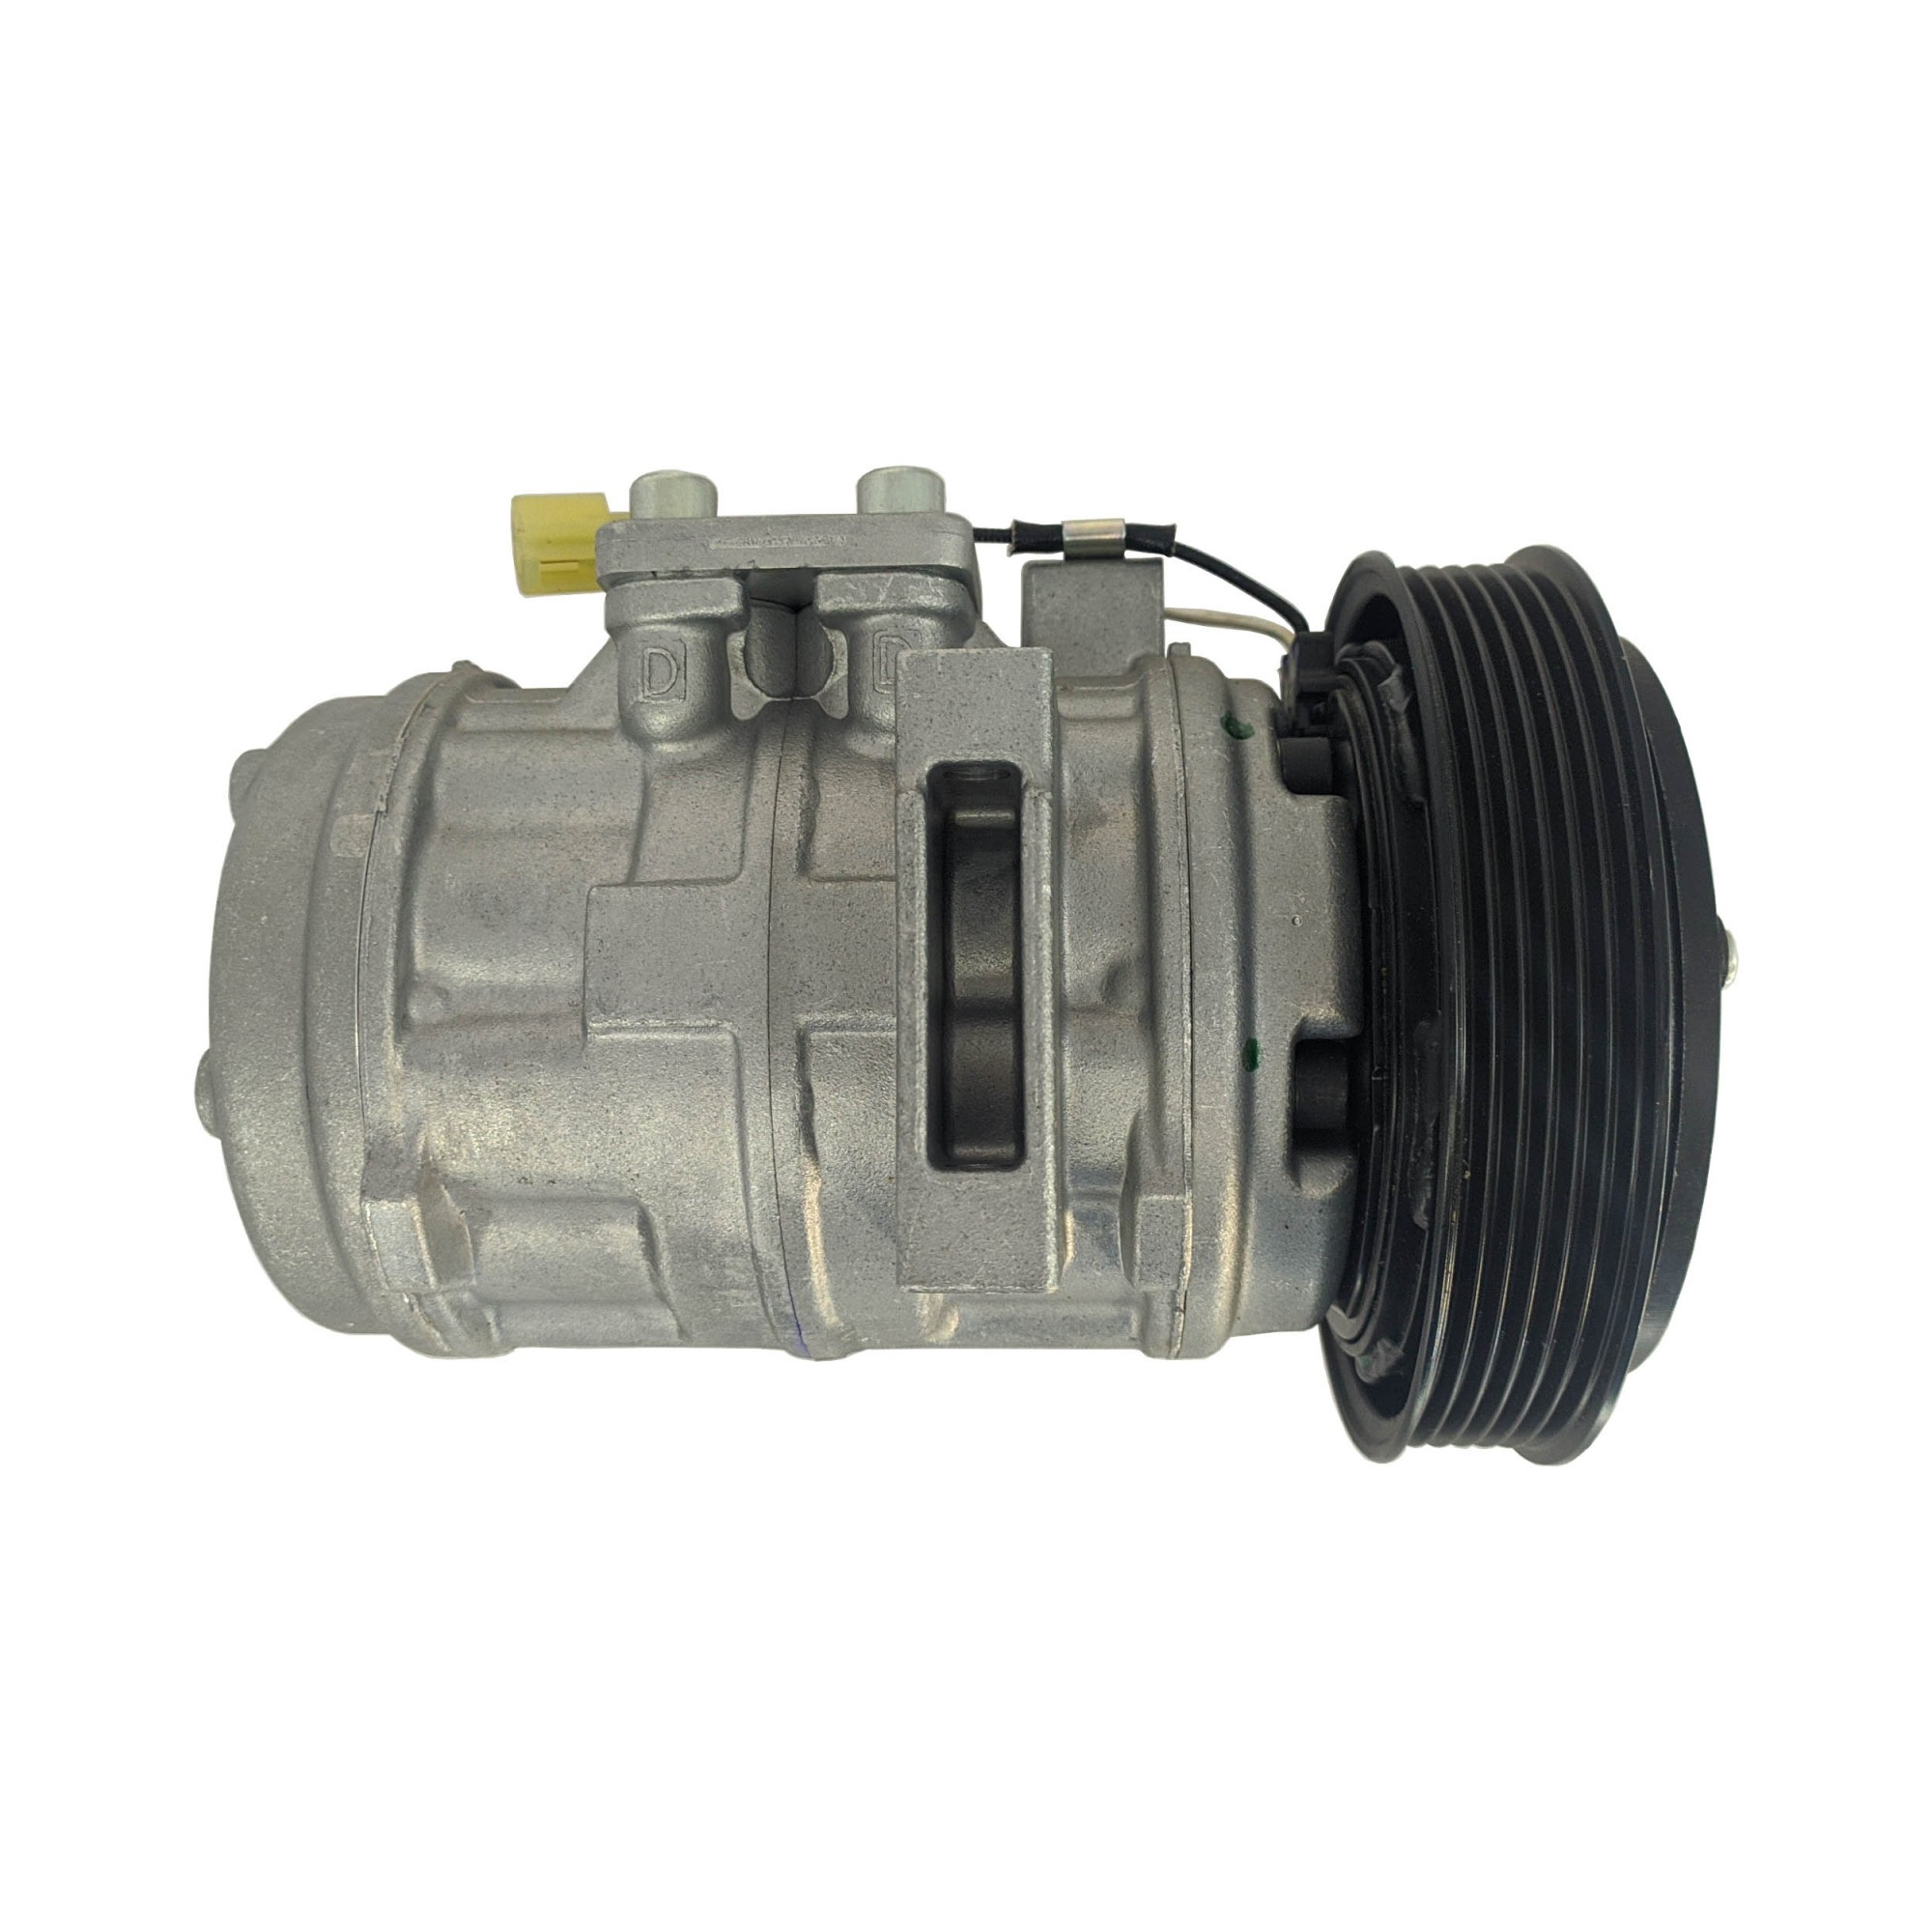 Compressor Ford Ka 1.0 1.6 2008 a 2011 - DENSO Original